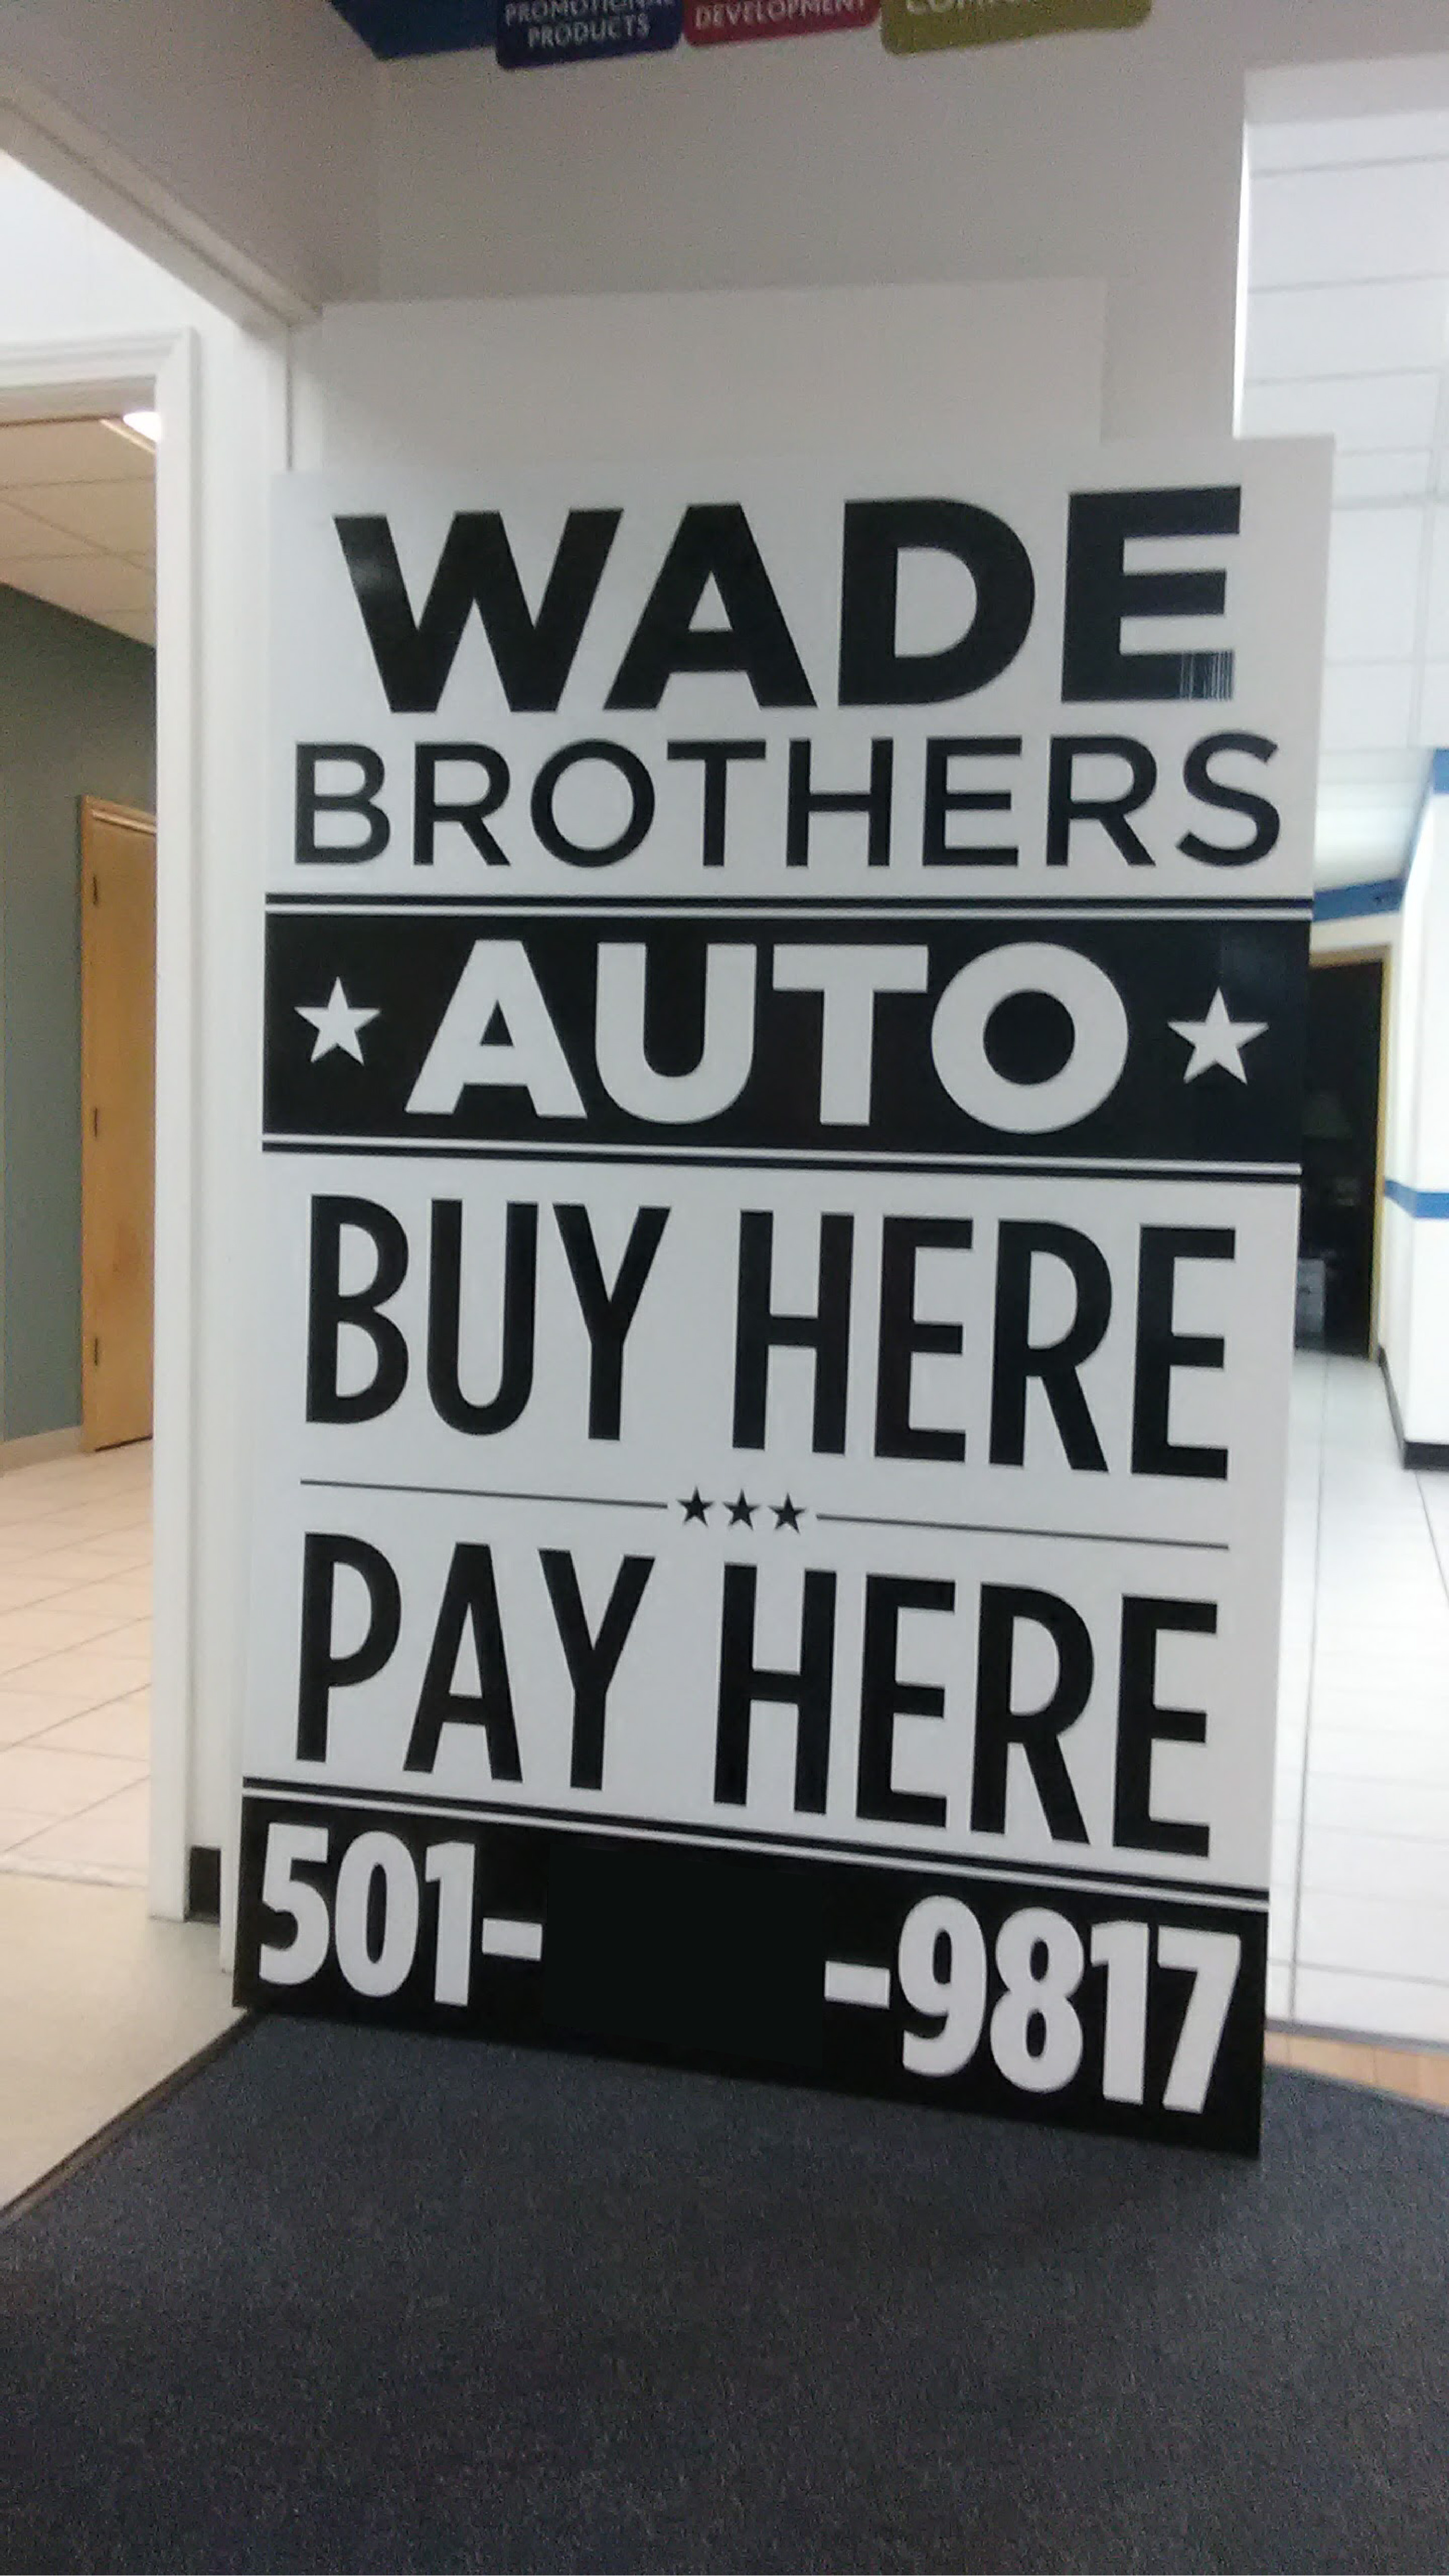 Wade Brothers Auto